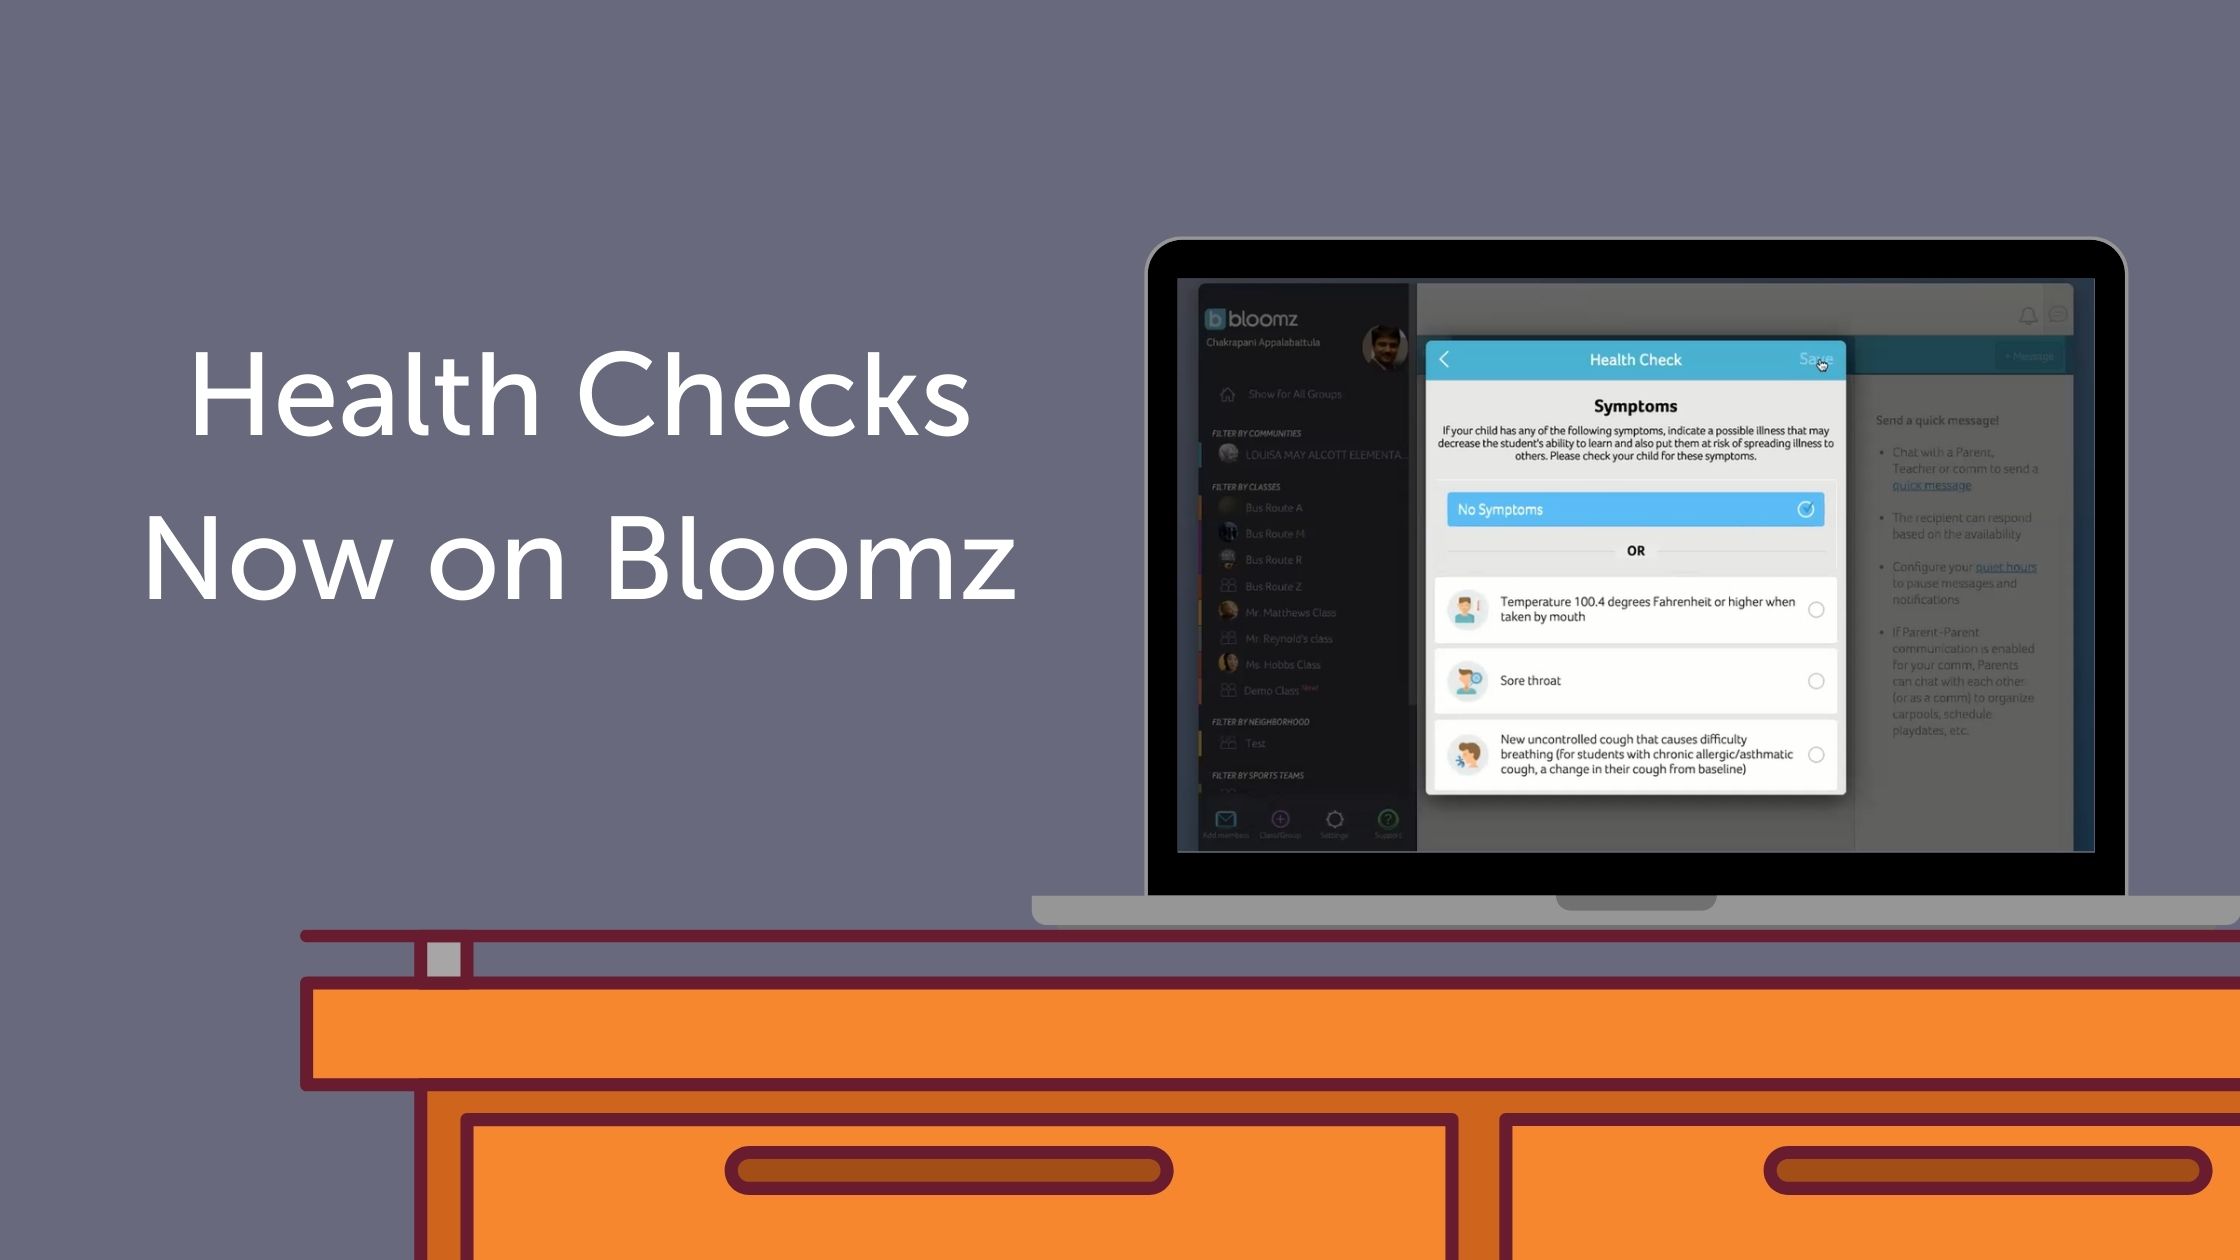 Health Checks are Now Available on Bloomz!